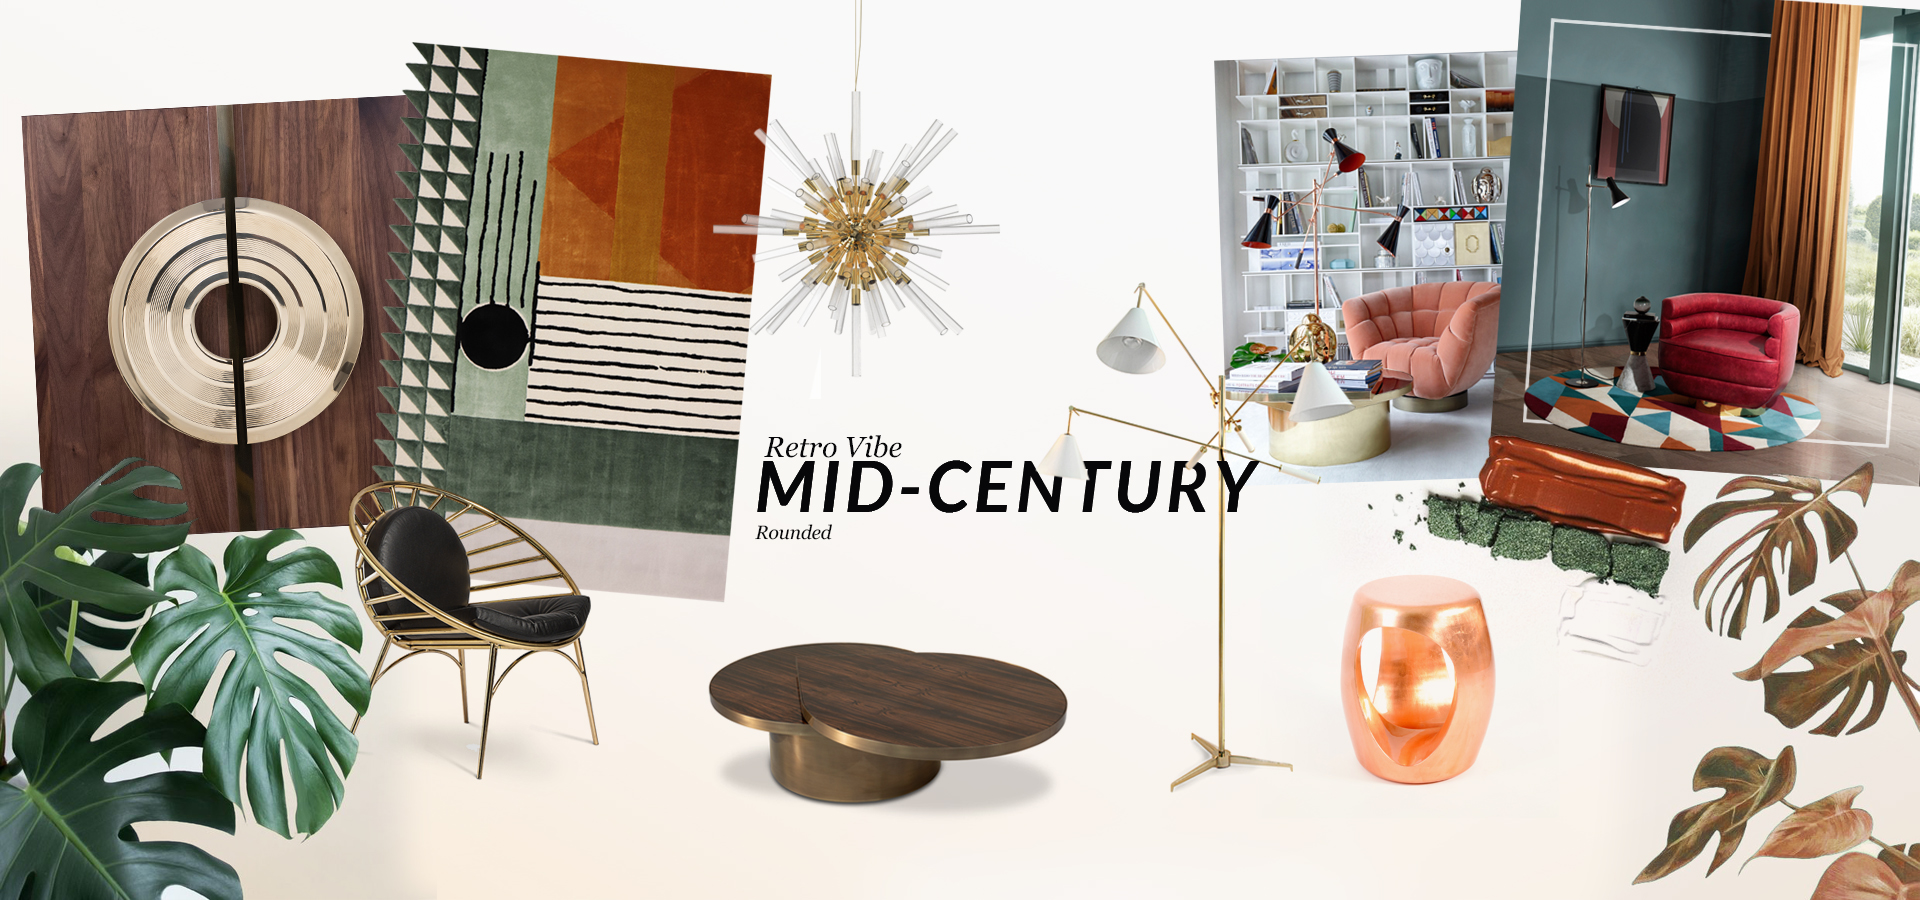 Interior Design Trends: Mid-Century Rounded maison et objet 2017 What to Expect From LUXXU at Maison et Objet 2017 moodboards trends covet house retro vibe mid century maison et objet 2017 What to Expect From LUXXU at Maison et Objet 2017 moodboards trends covet house retro vibe mid century